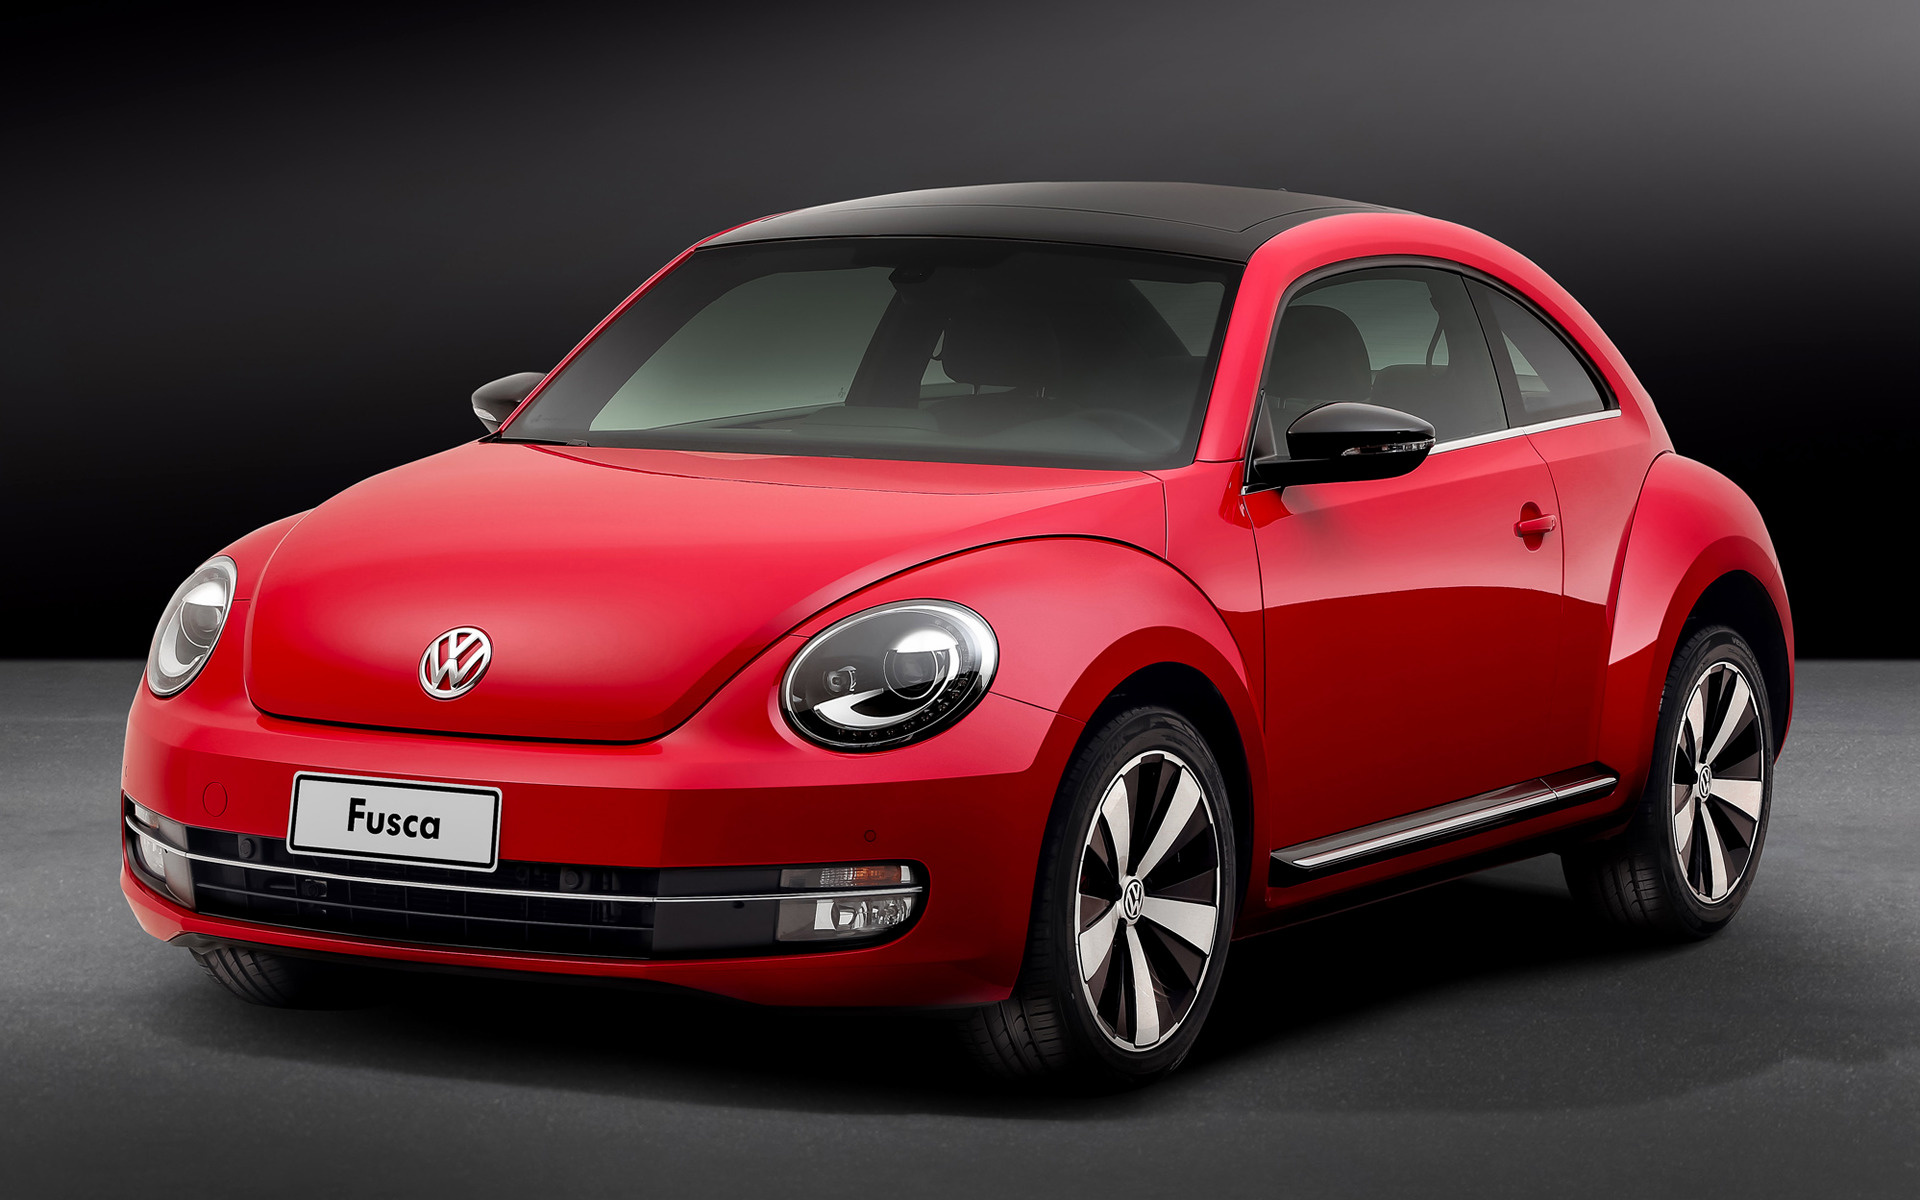 2012 Volkswagen Fusca   Wallpapers and HD Images Car Pixel 1920x1200